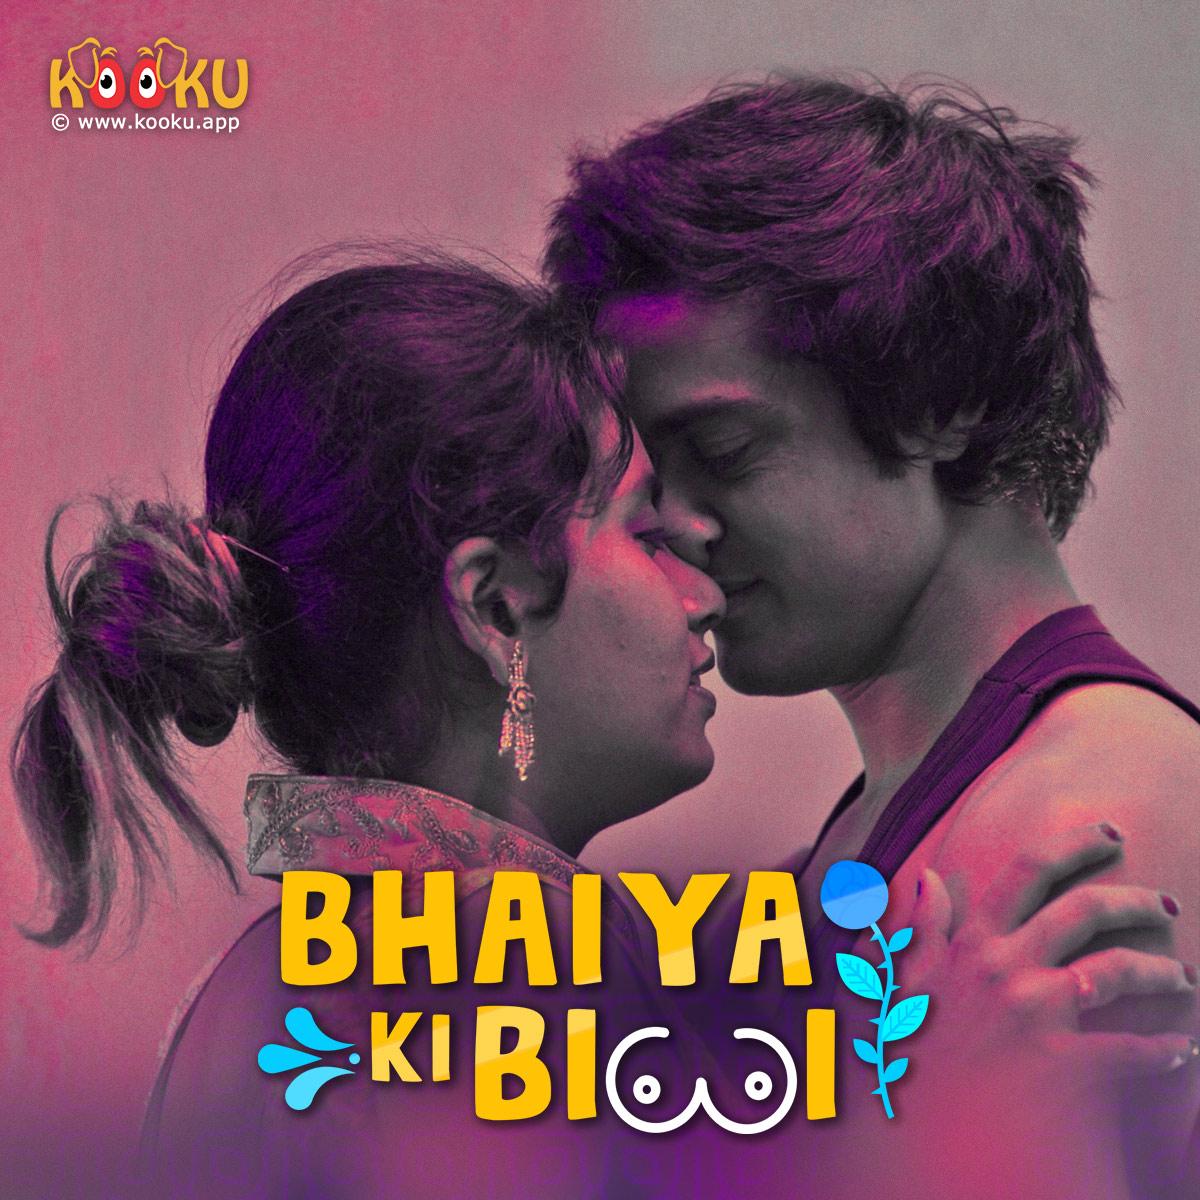 Bhaiya Ki Biwi S01 2020 Hindi Kooku Complete Web Series 480p HDRip 300MB Download